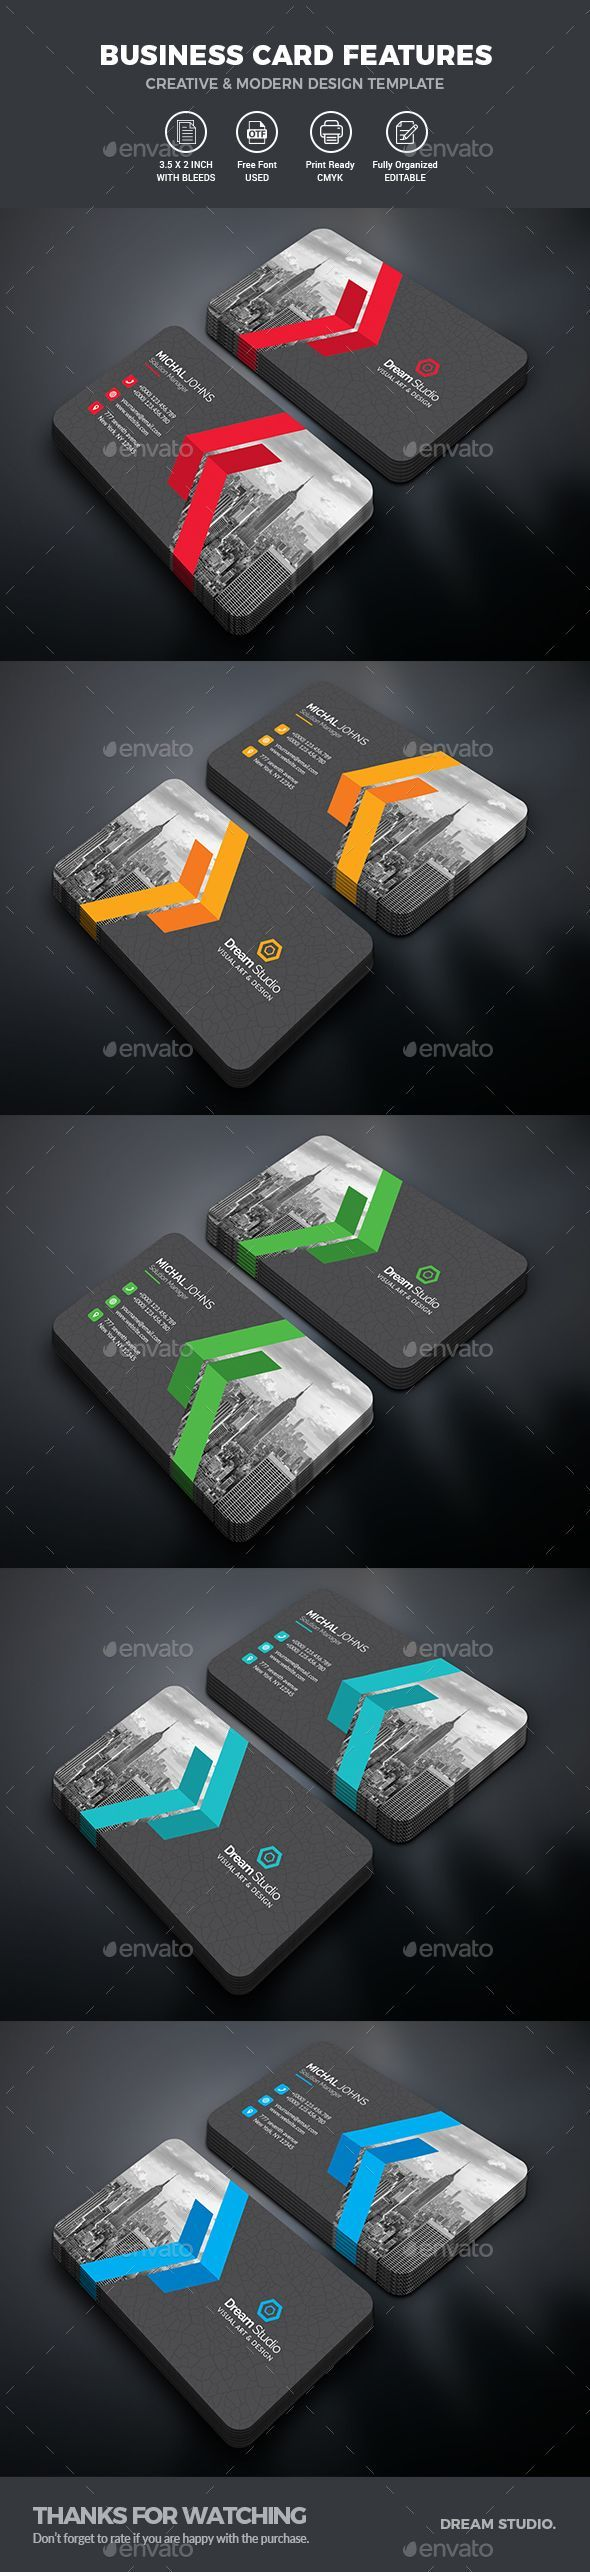 The 1715 best Business Card images on Pinterest